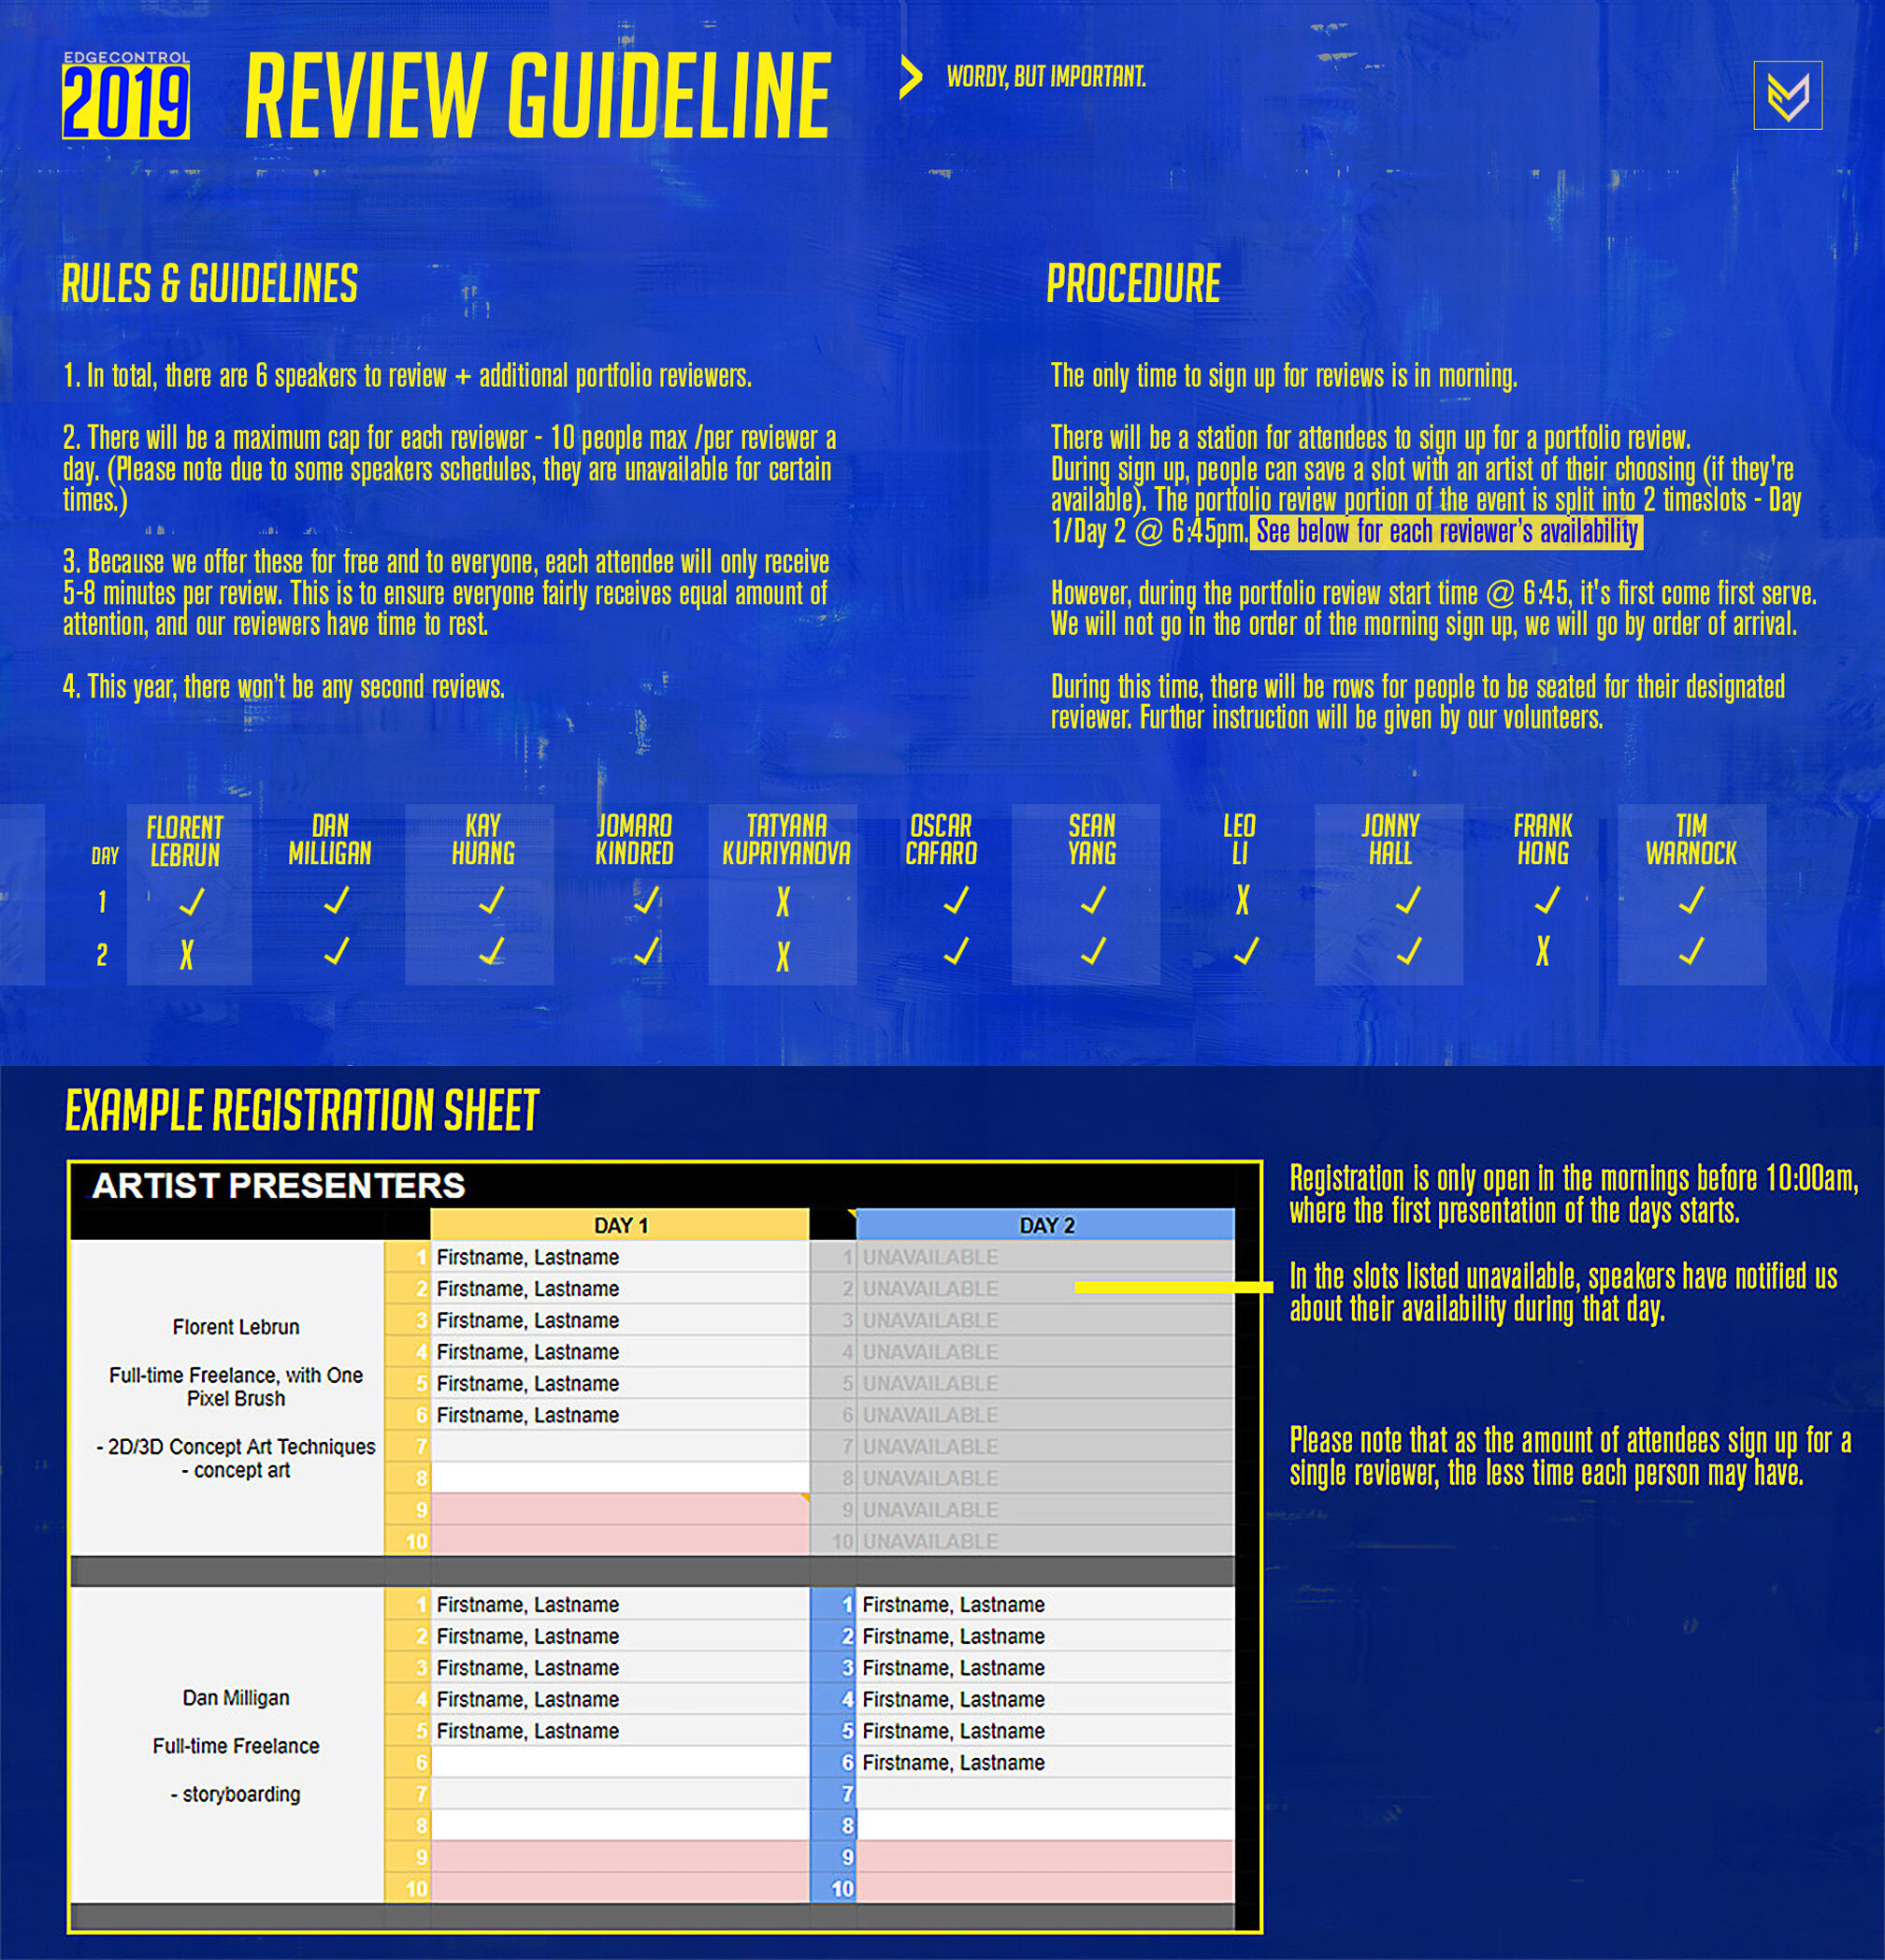 ece2019-gfx-event-portfolioreviewguideline-extended.jpg